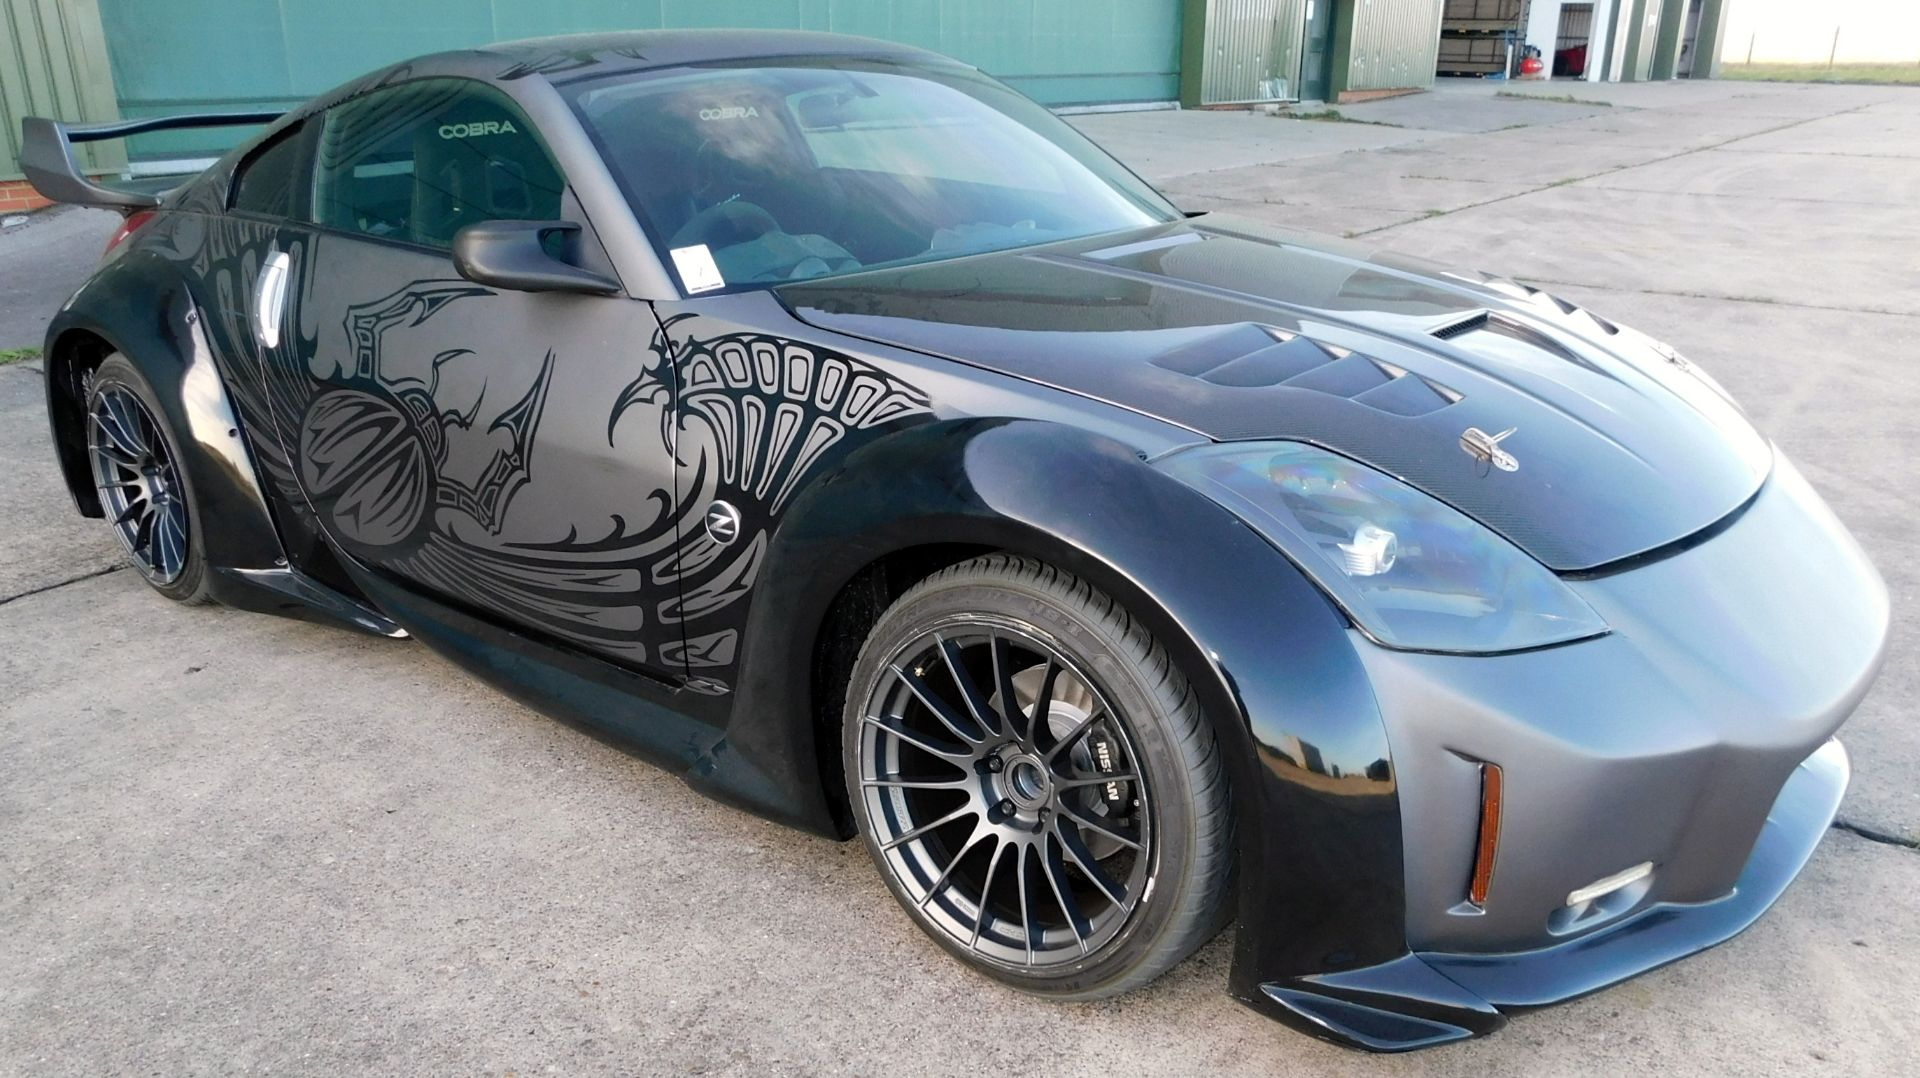 """Nissan 350z 2 door Coupe Original Picture Car From """"Fast & Furious 3""""* ,LS3 V8 6.2 Litre Engine, - Image 4 of 16"""